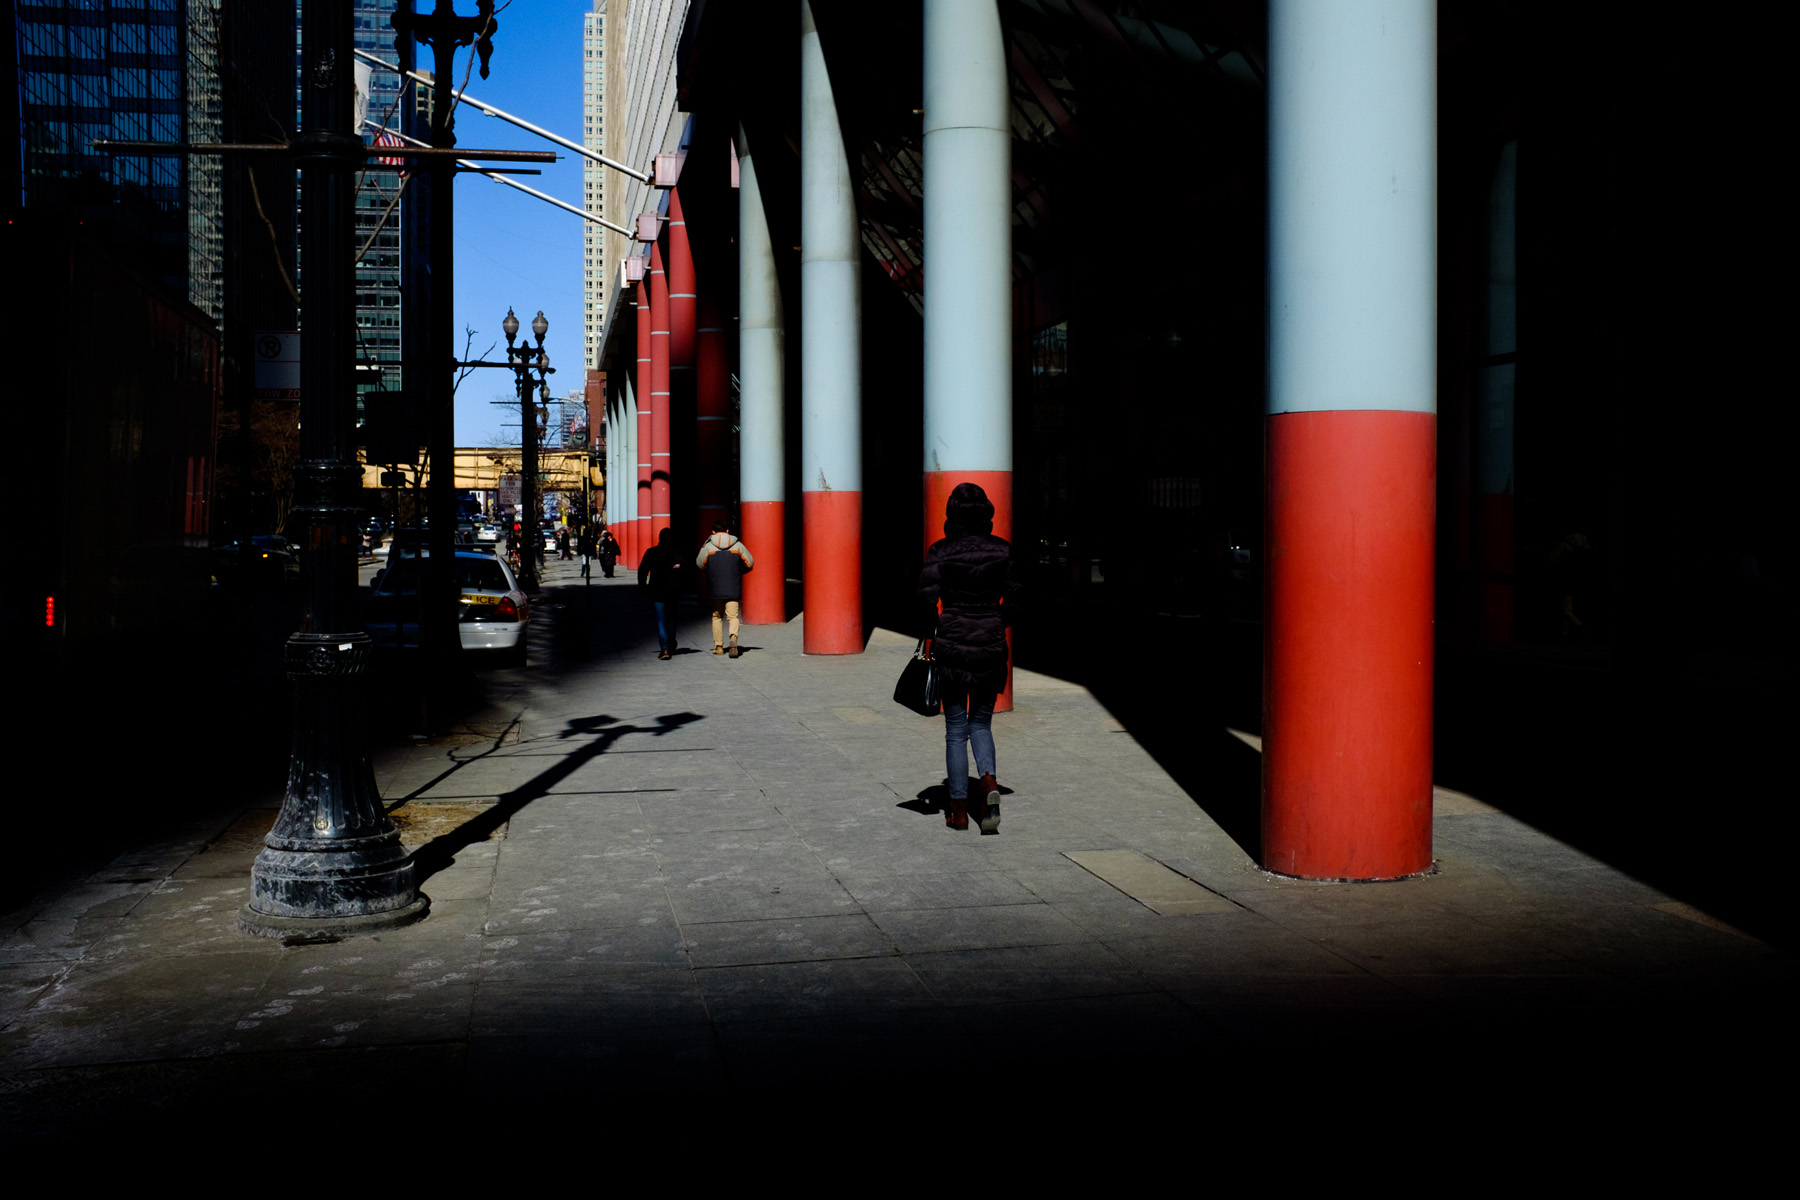 woman standing near the blue and red pillars of the Thompson Center surrounded by deep shadows.